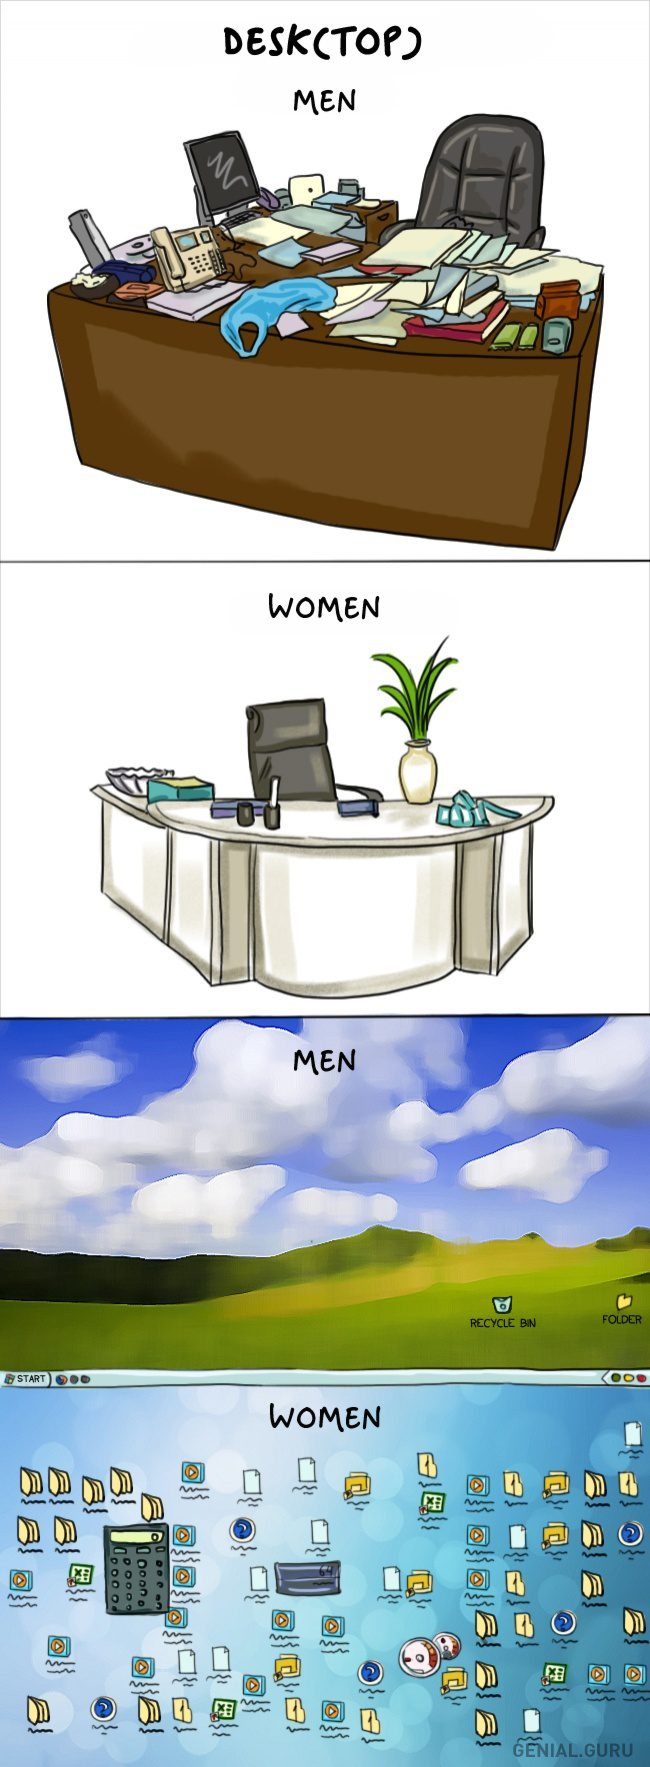 men women difference 8